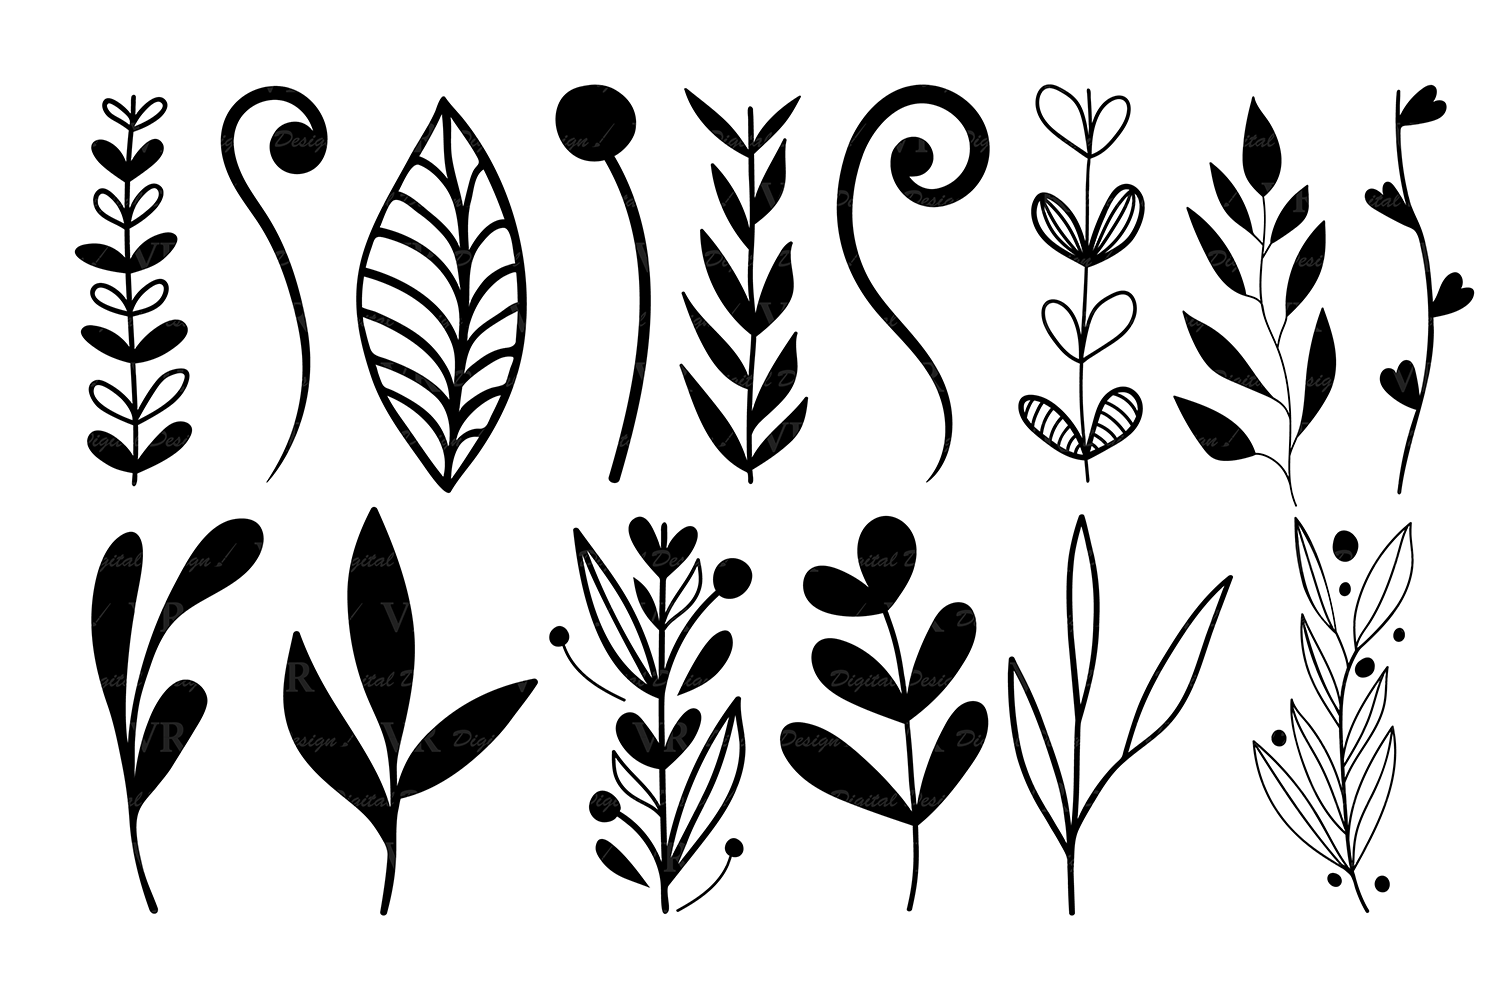 Wreaths Clipart Hand Drawn Black Design Elements Digital